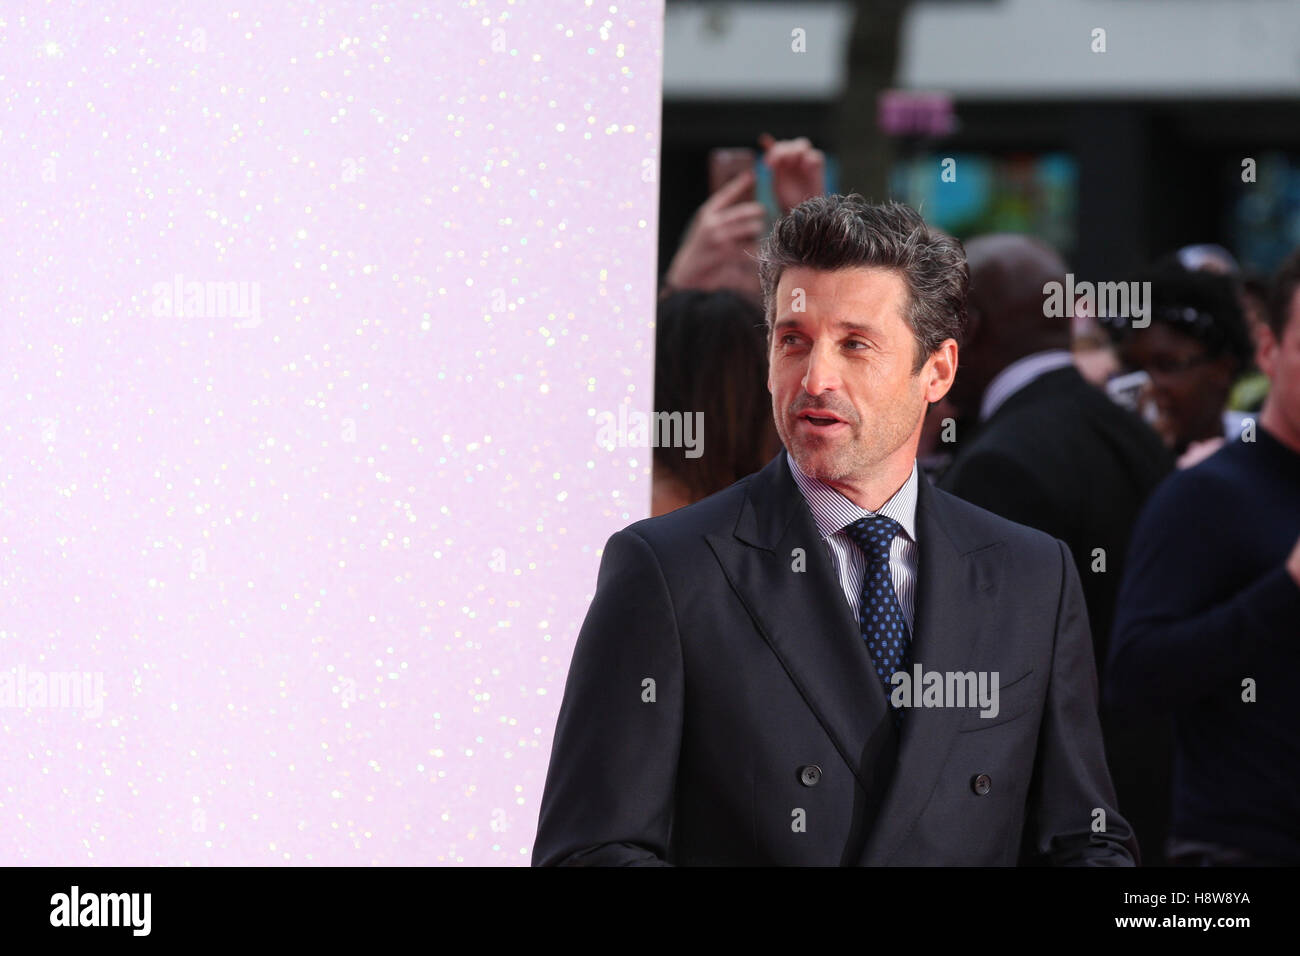 Patrick Dempsey attends Bridget Jone's Baby film premiere London on 05 Sep, 2016 Stock Photo